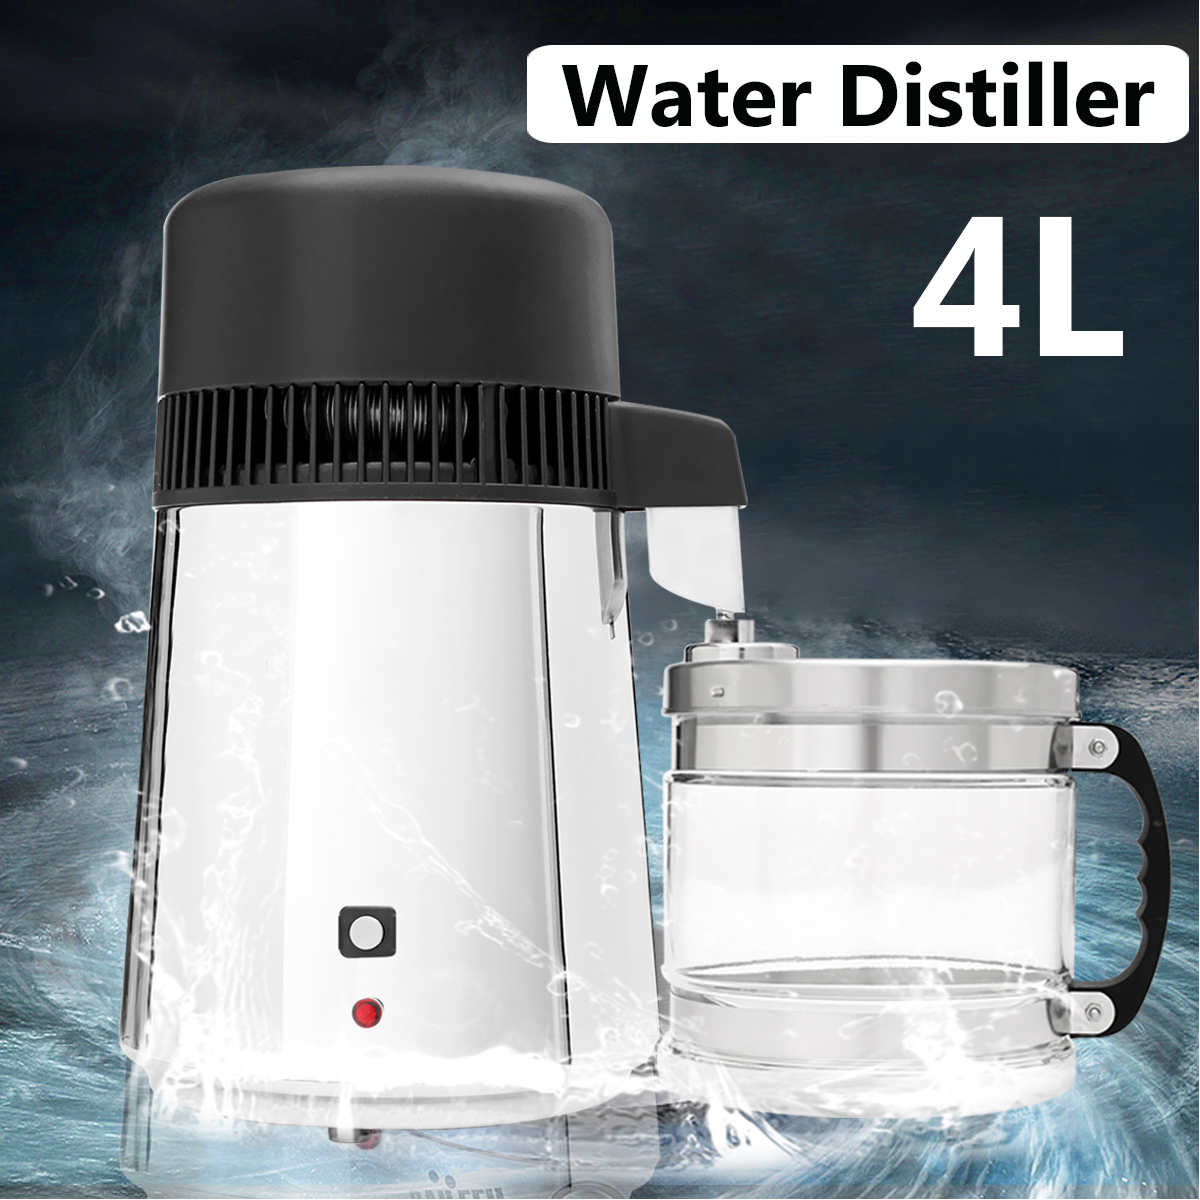 750W 4L Home Pure Water Distiller Stainless Steel Water Distillation Purifier Container Glass Jar for Dental Laboratory Filter